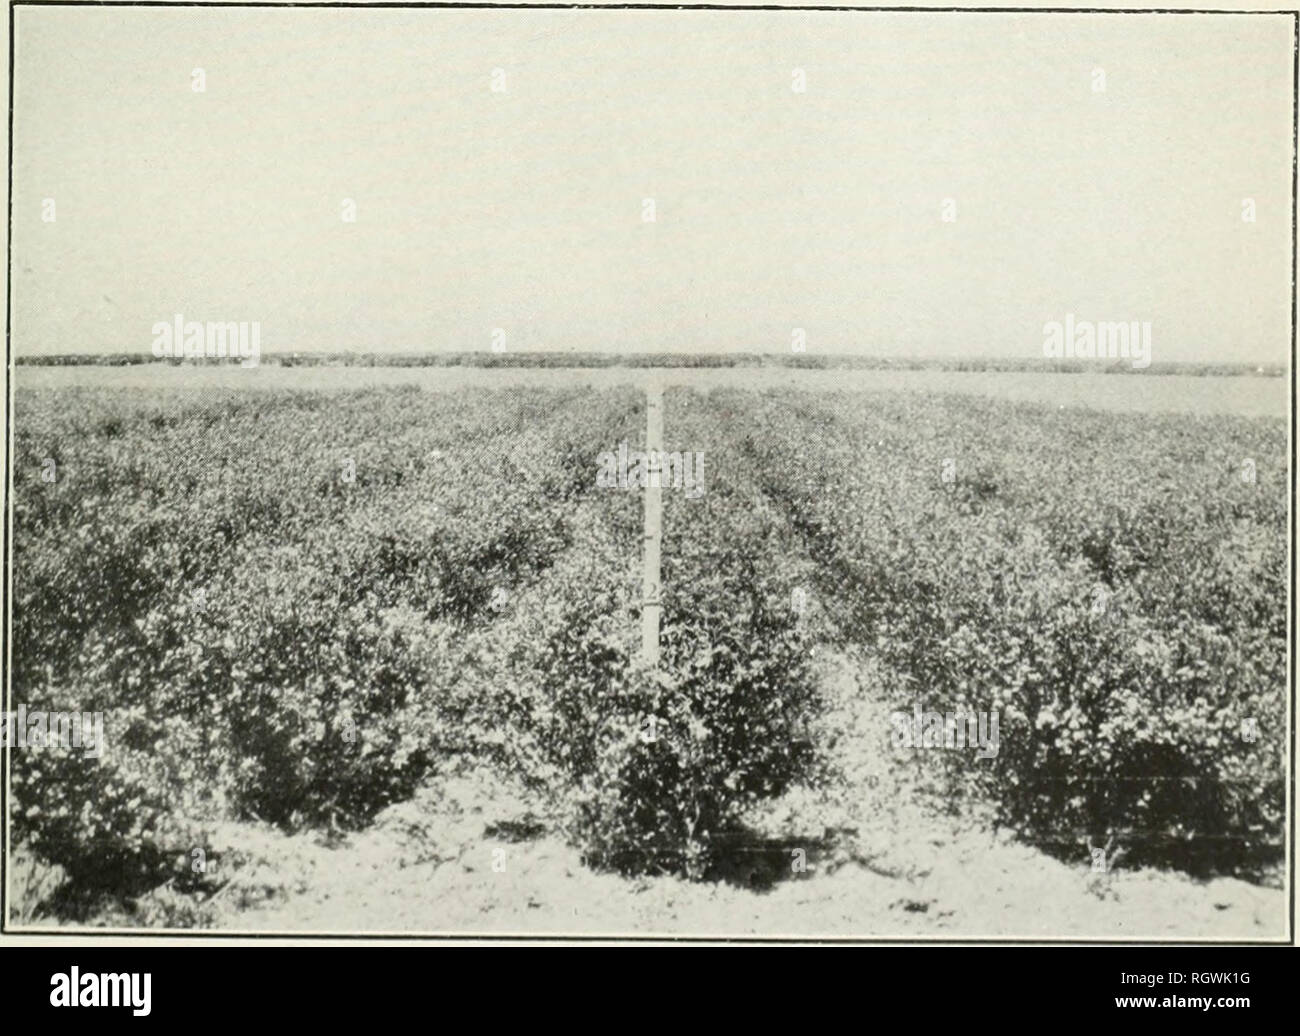 . Bulletin. 1901-13. Agriculture; Agriculture. Fig. 1.—Alfalfa Plants in the Breeding Nursery, Showing the First Season's Growth.. Fig. 2.—Selected Strains of Alfalfa in Double-Cultivated Rows. ALFALFA BREEDING AT THE BELLEFOURCHE EXPERIMENT FARM, SOUTH DAKOTA.. Please note that these images are extracted from scanned page images that may have been digitally enhanced for readability - coloration and appearance of these illustrations may not perfectly resemble the original work.. United States. Bureau of Plant Industry, Soils, and Agricultural Engineering. Washington Govt. Print. Off - Stock Image